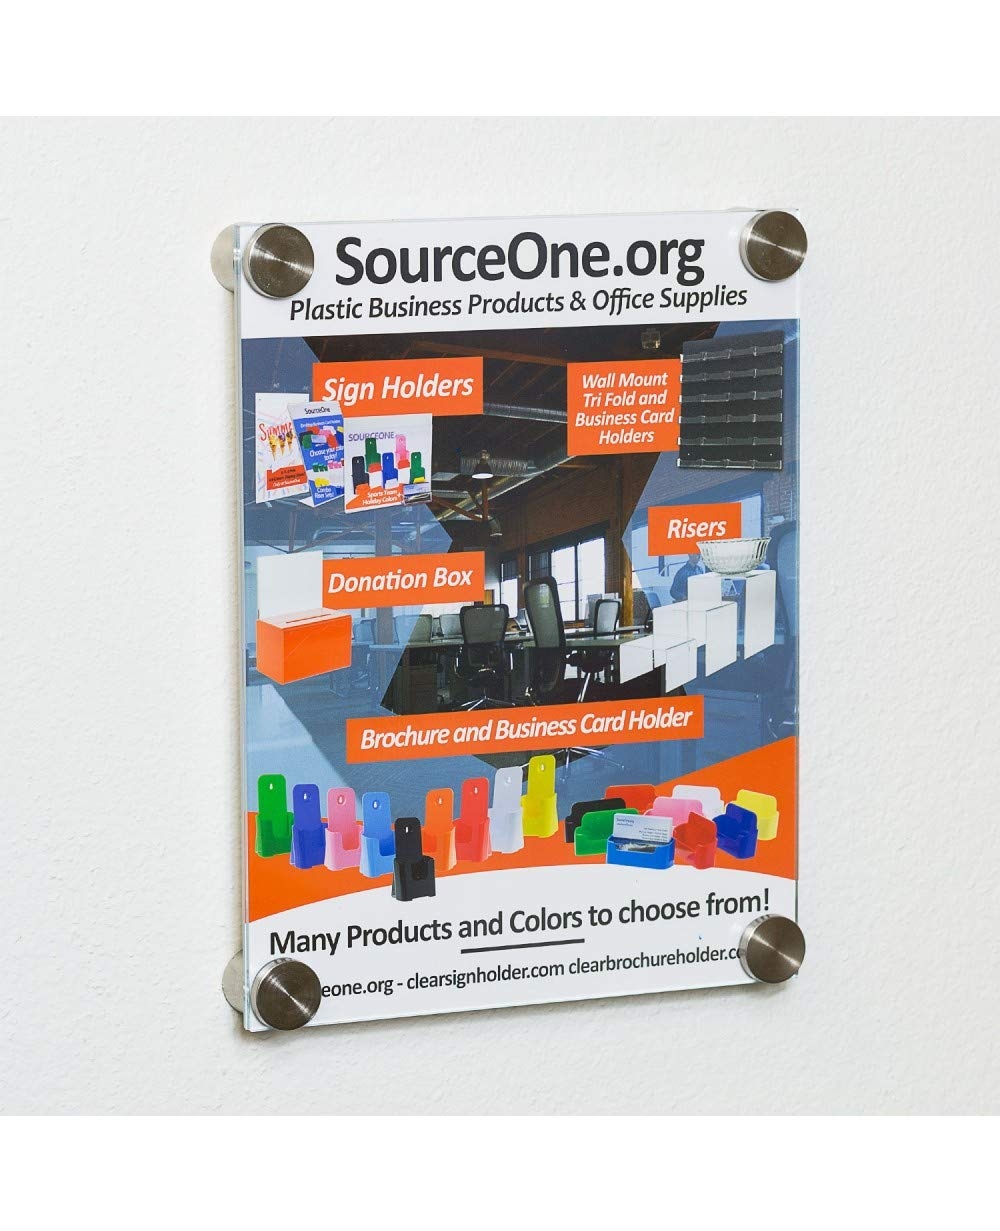 SOURCEONE.ORG Source One Acrylic Sign Holder with Standoff, Clear or Frosted